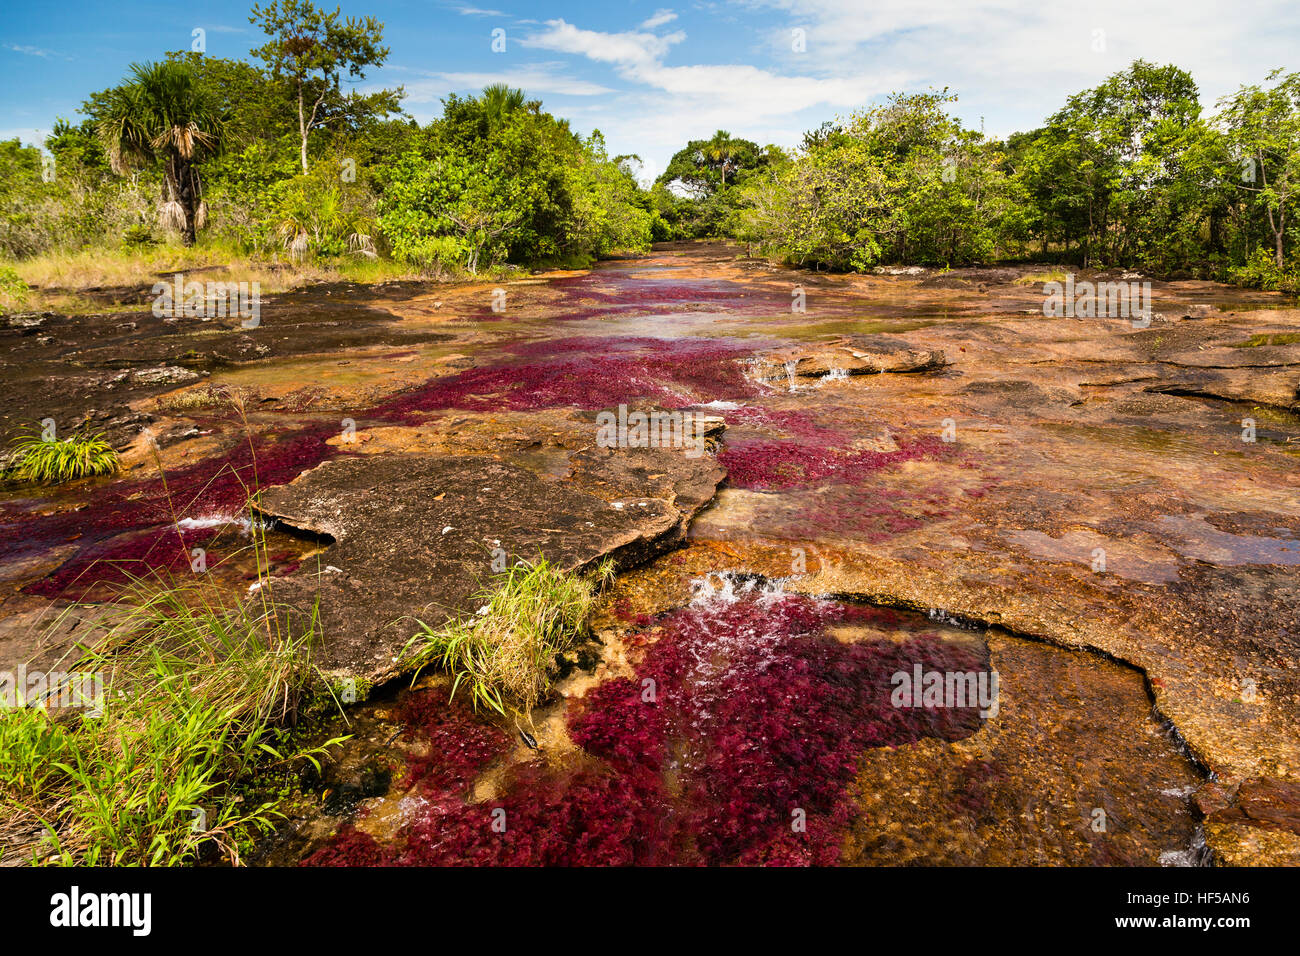 Crystal Channel with red water plants, Caño Cristales, feature of Los Ochos National Park, Parque Nacional - Stock Image